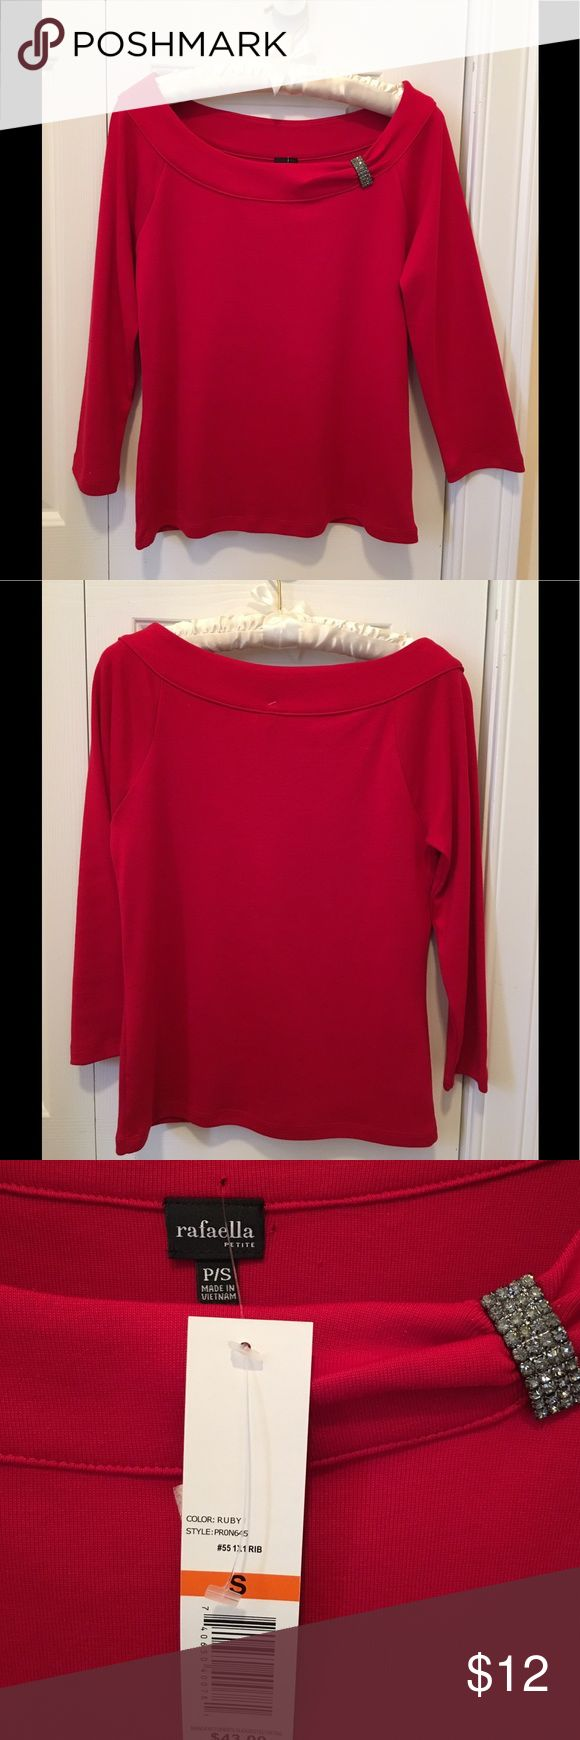 Rafaella Petite Red Top with Bling ❤️ Rafaella Petite long sleeve top/jersey,  long sleeves. Bling on Neckline for drama.  Ruby color.  Size PS, Petite small. 100% cotton.  Made in Vietnam.  Please note in third picture the tiny hole in the fabric from the price tag, and the tinier hole to the right of the tag. Priced accordingly.  Hardly noticeable. Rafaella Tops Tees - Long Sleeve